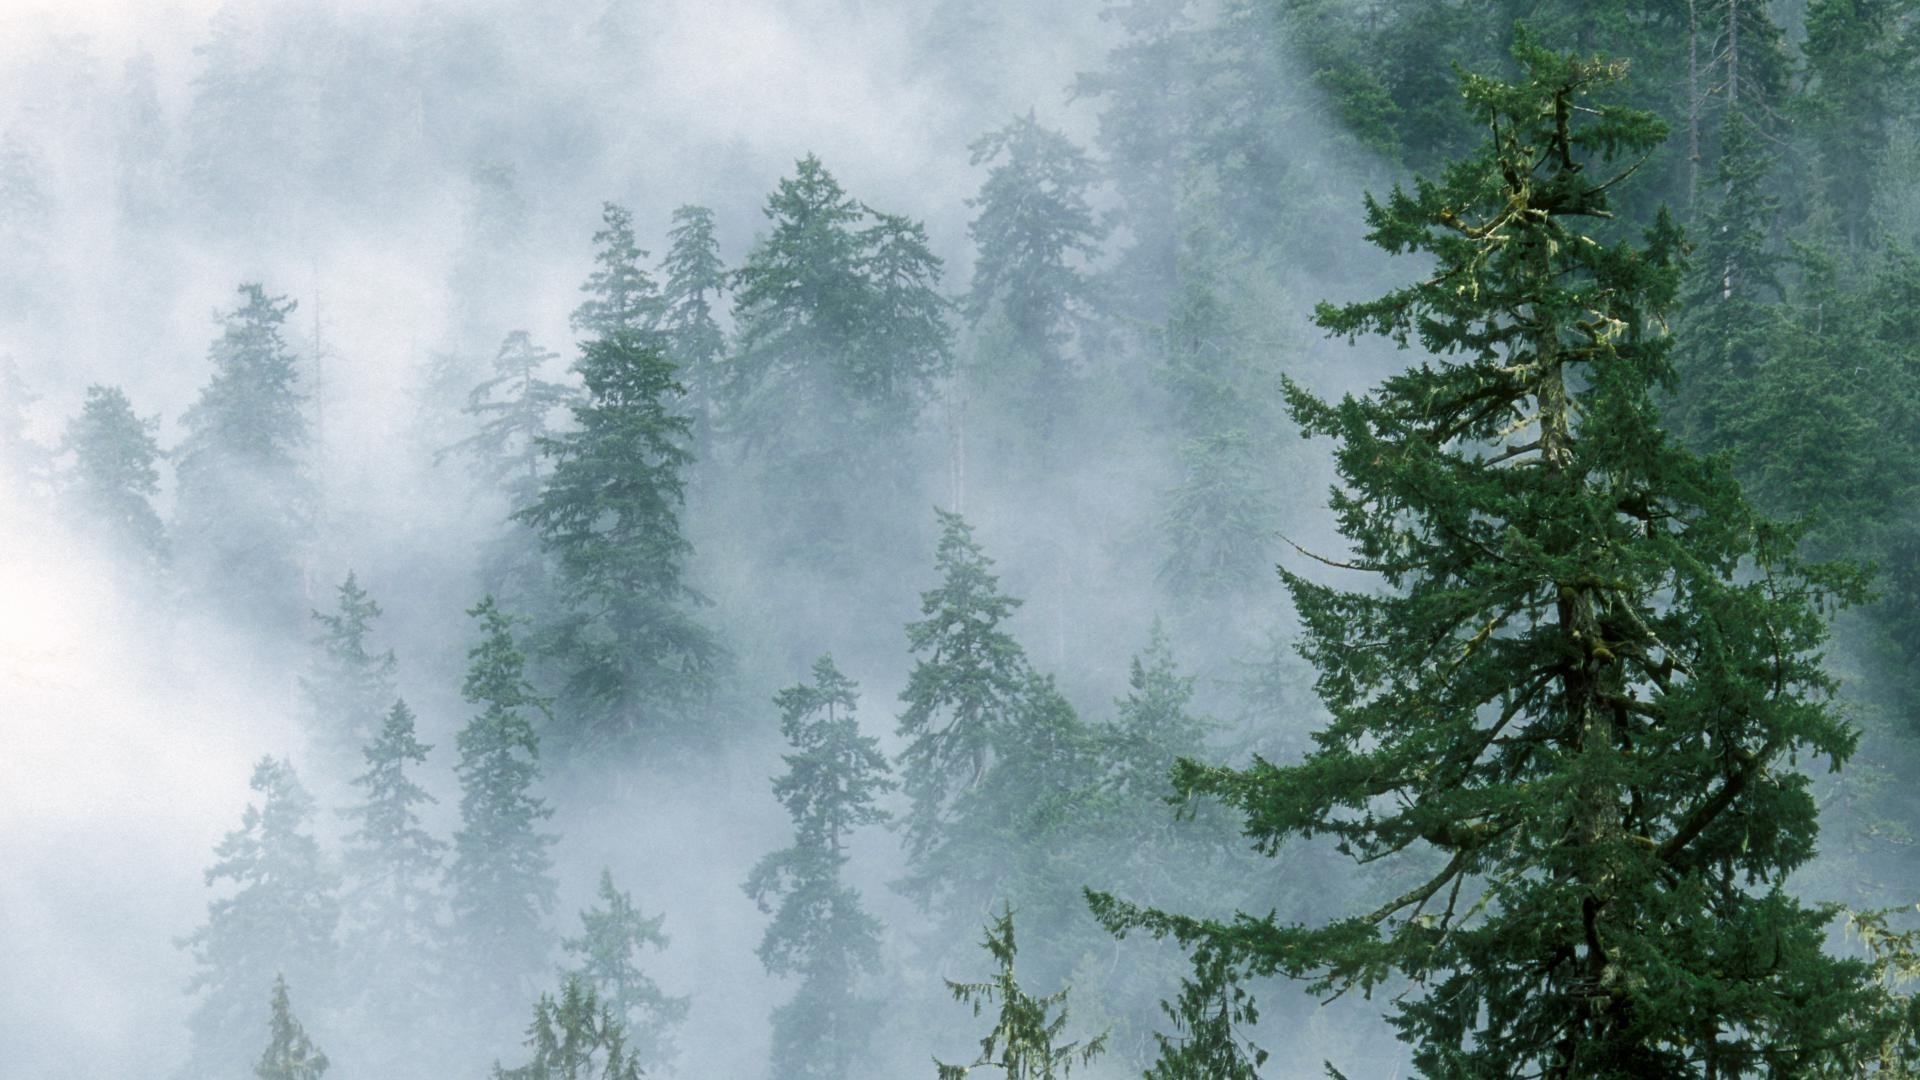 Res: 1920x1080, Foggy Forest Wallpapers HD.